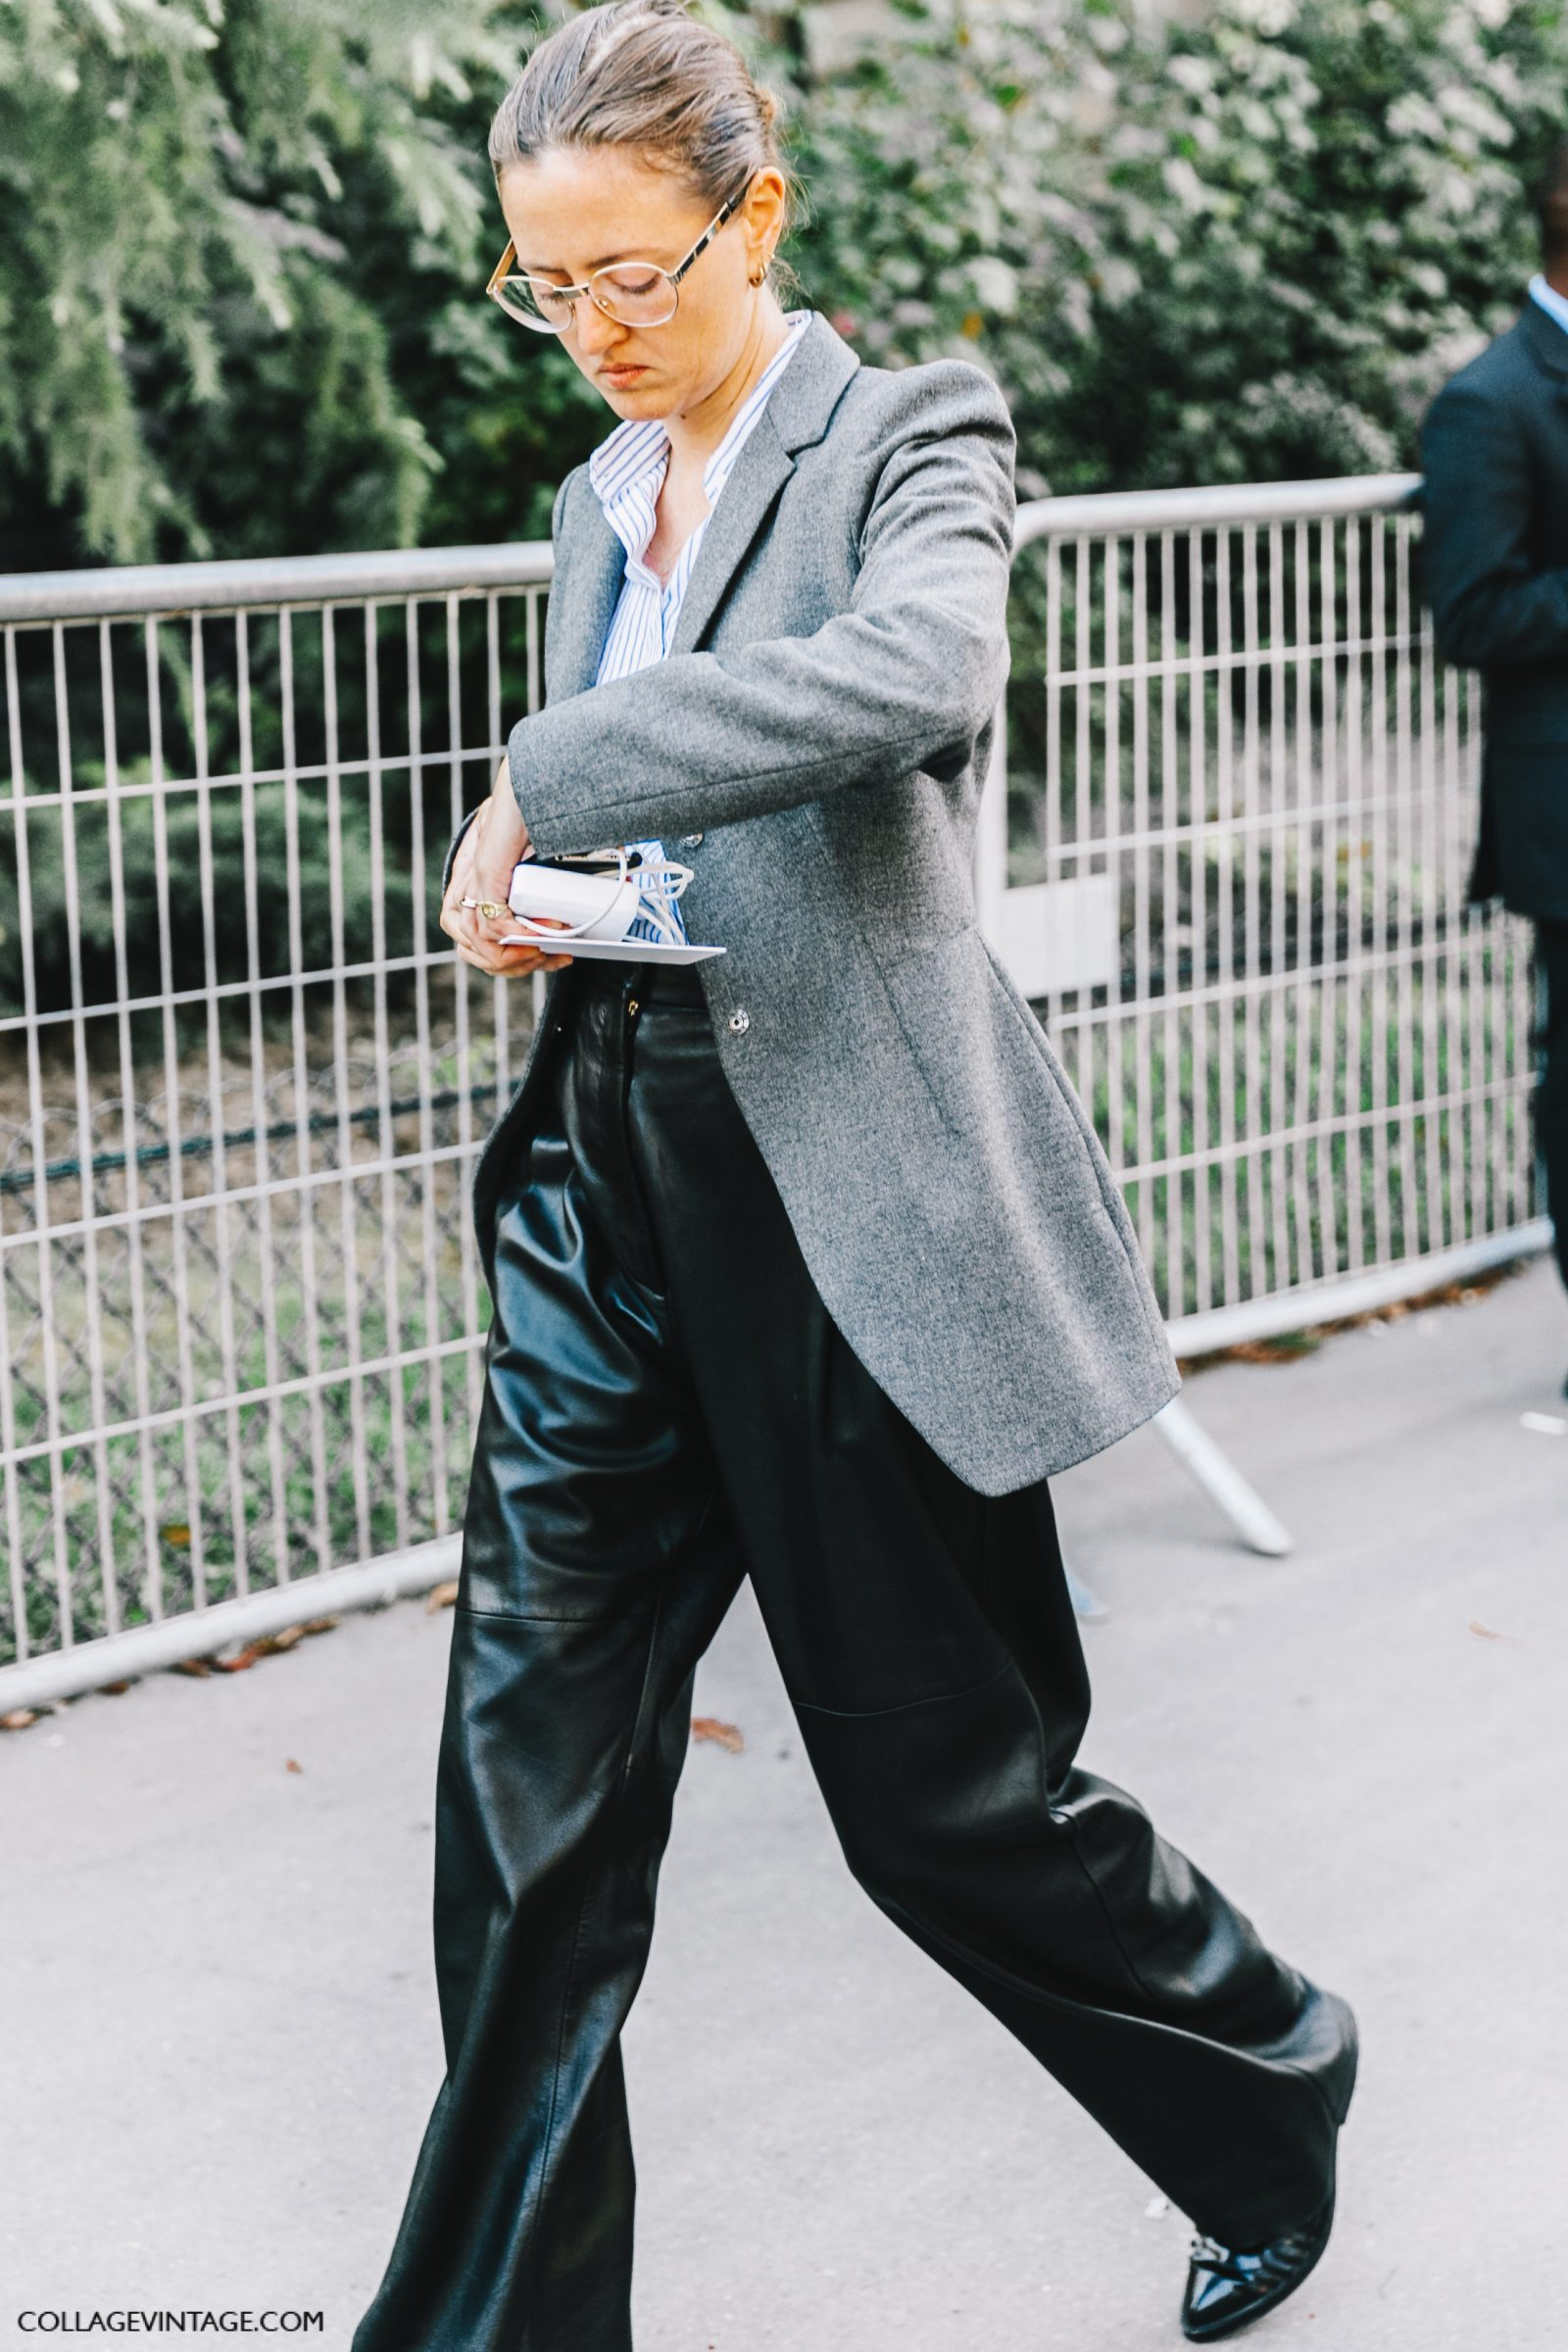 pfw-paris_fashion_week_ss17-street_style-outfits-collage_vintage-olympia_letan-hermes-stella_mccartney-sacai-124